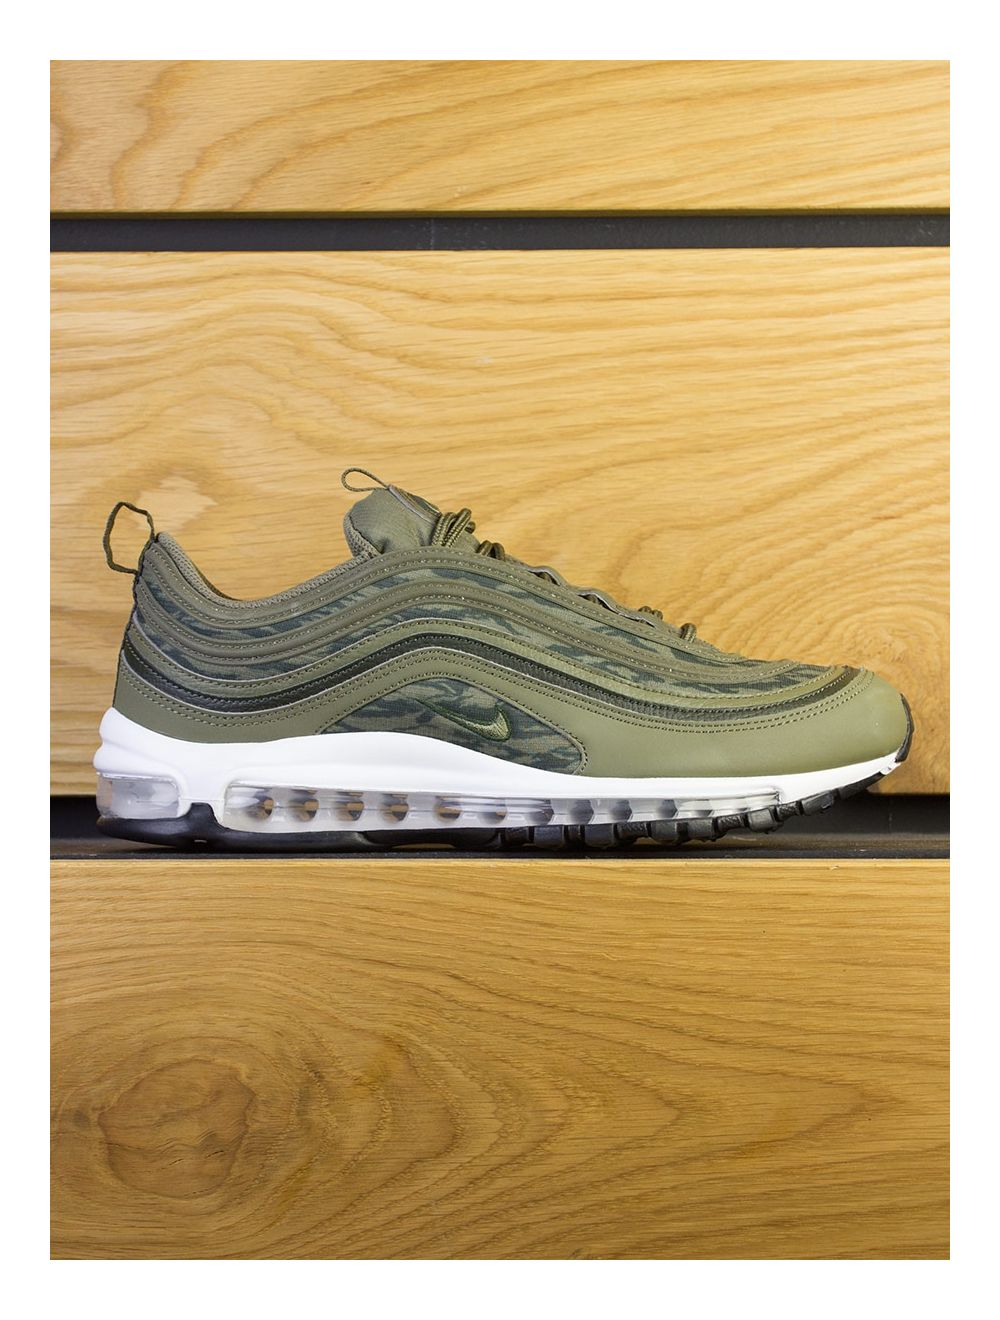 uk availability 935fb 89489 Nike Air Max 97 AOP